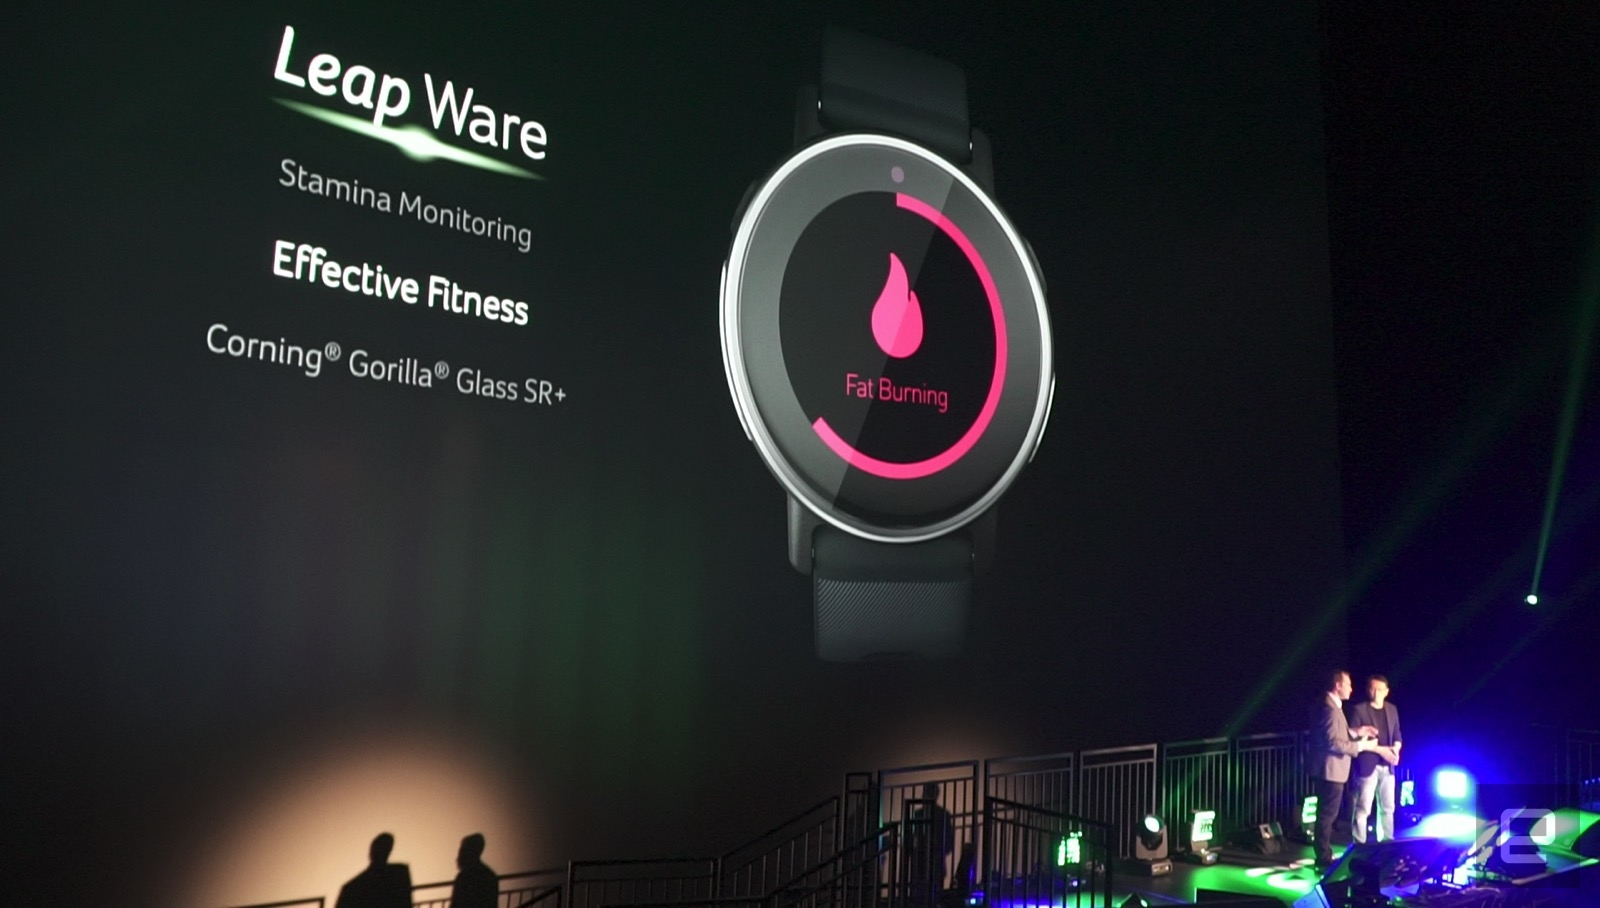 Acer Presents Leap Ware